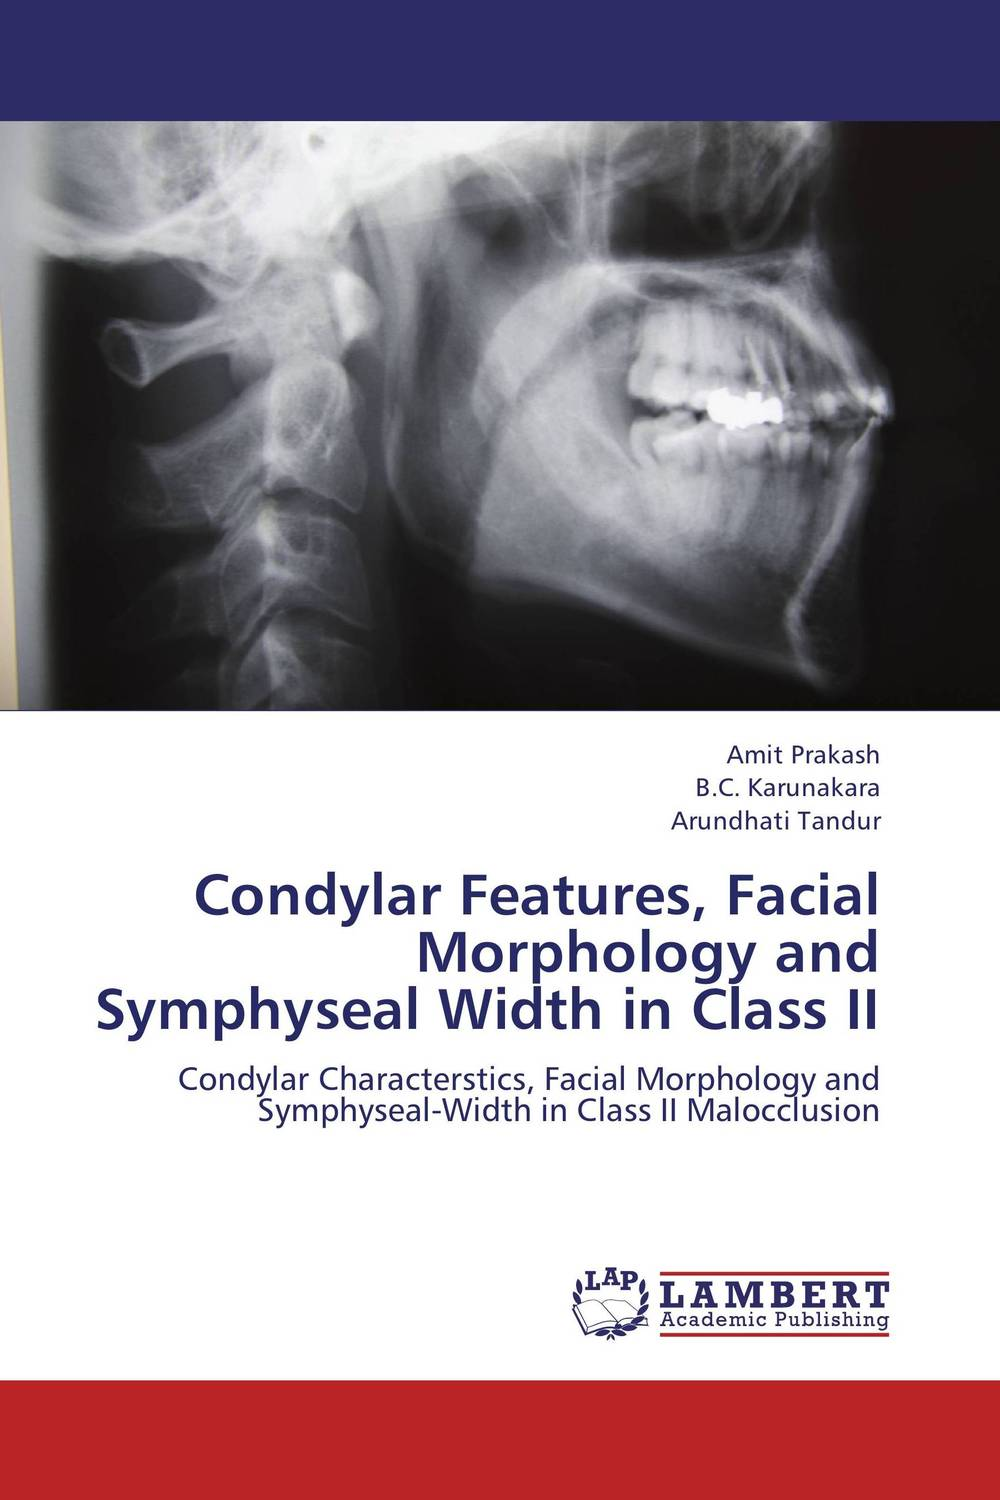 Condylar Features, Facial Morphology and Symphyseal Width in Class II different class